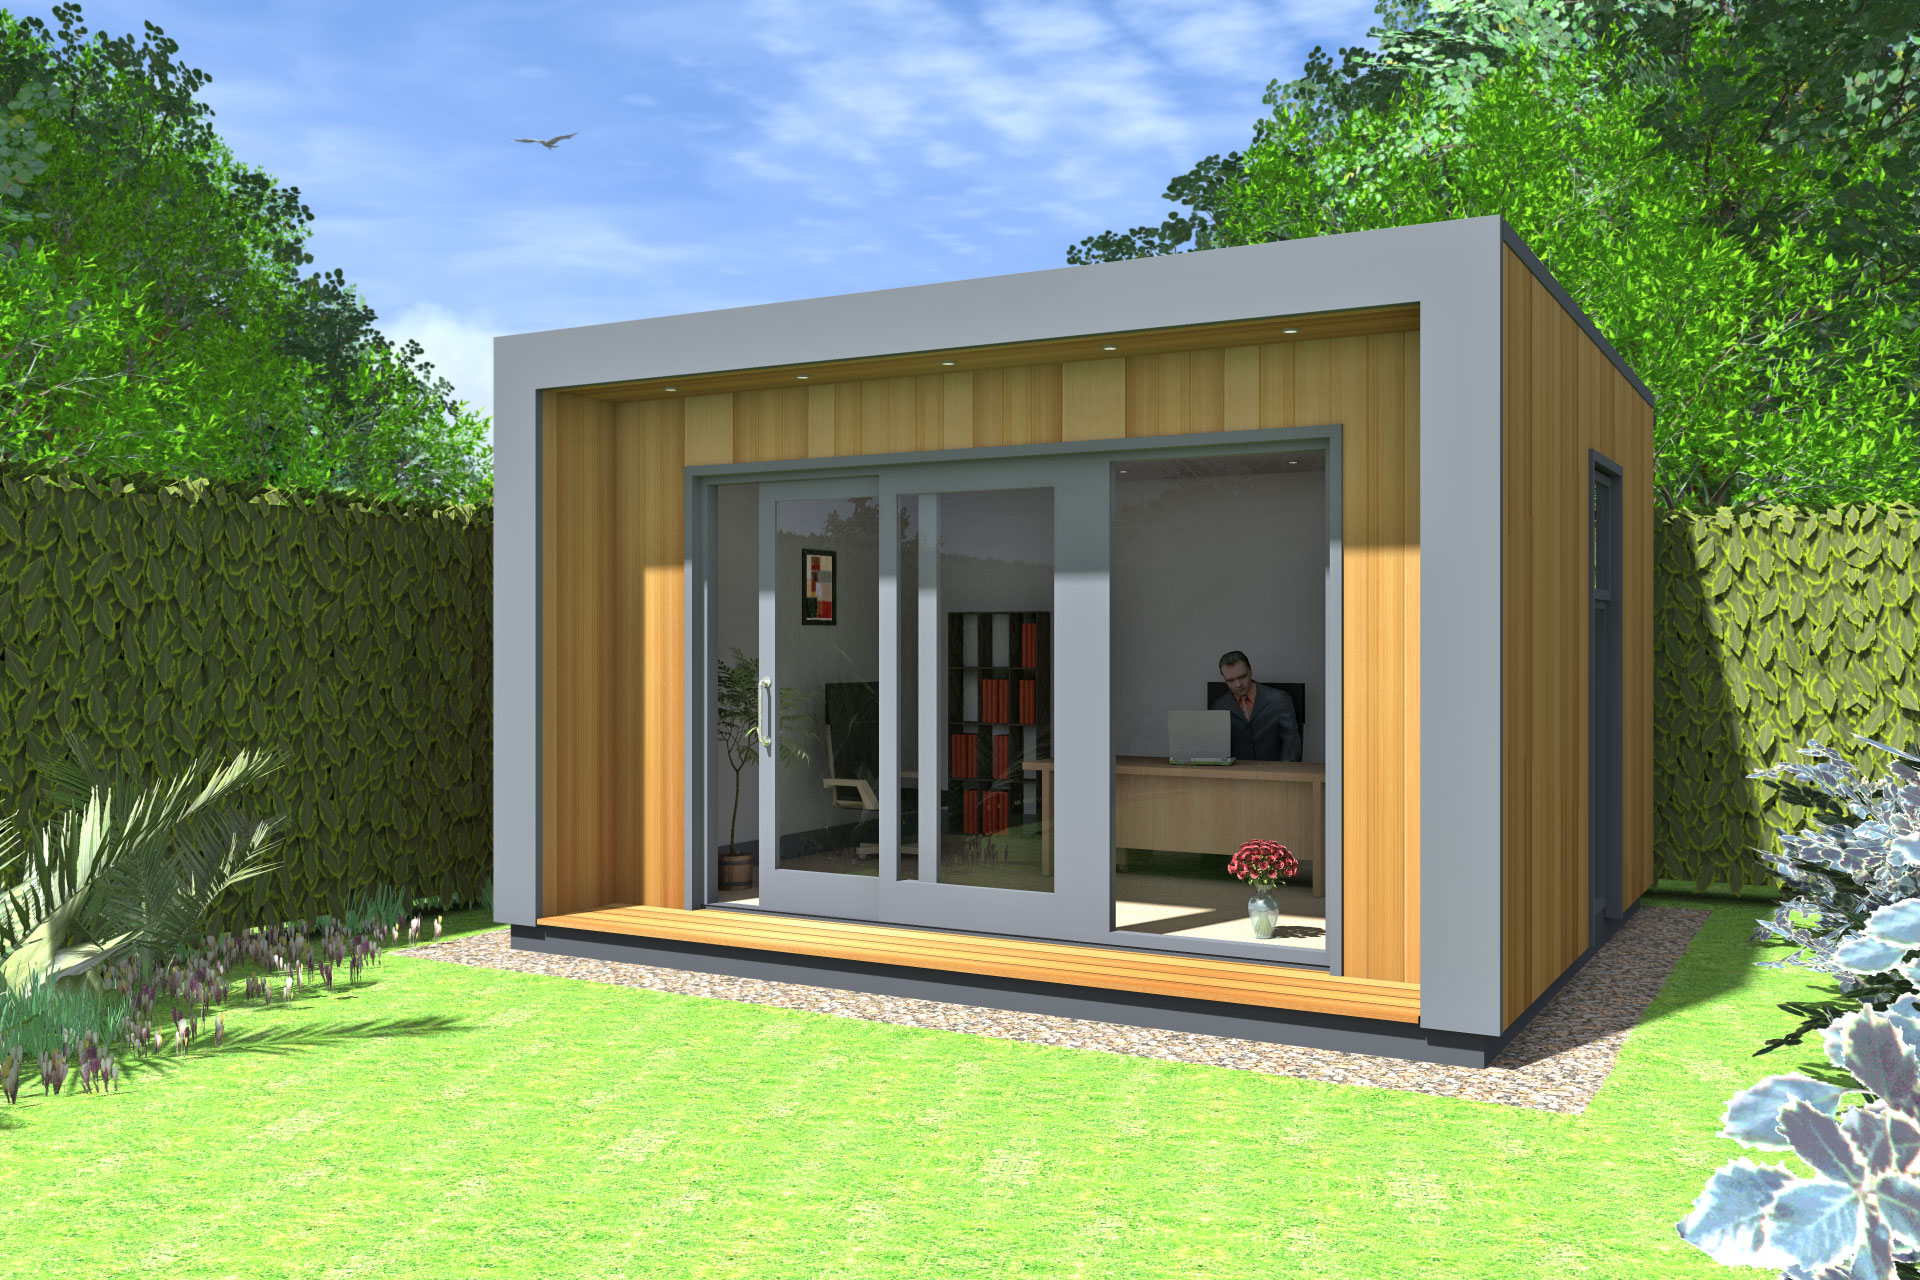 Ecos cubeco garden office ideas gallery ecos ireland for Garden office ideas uk